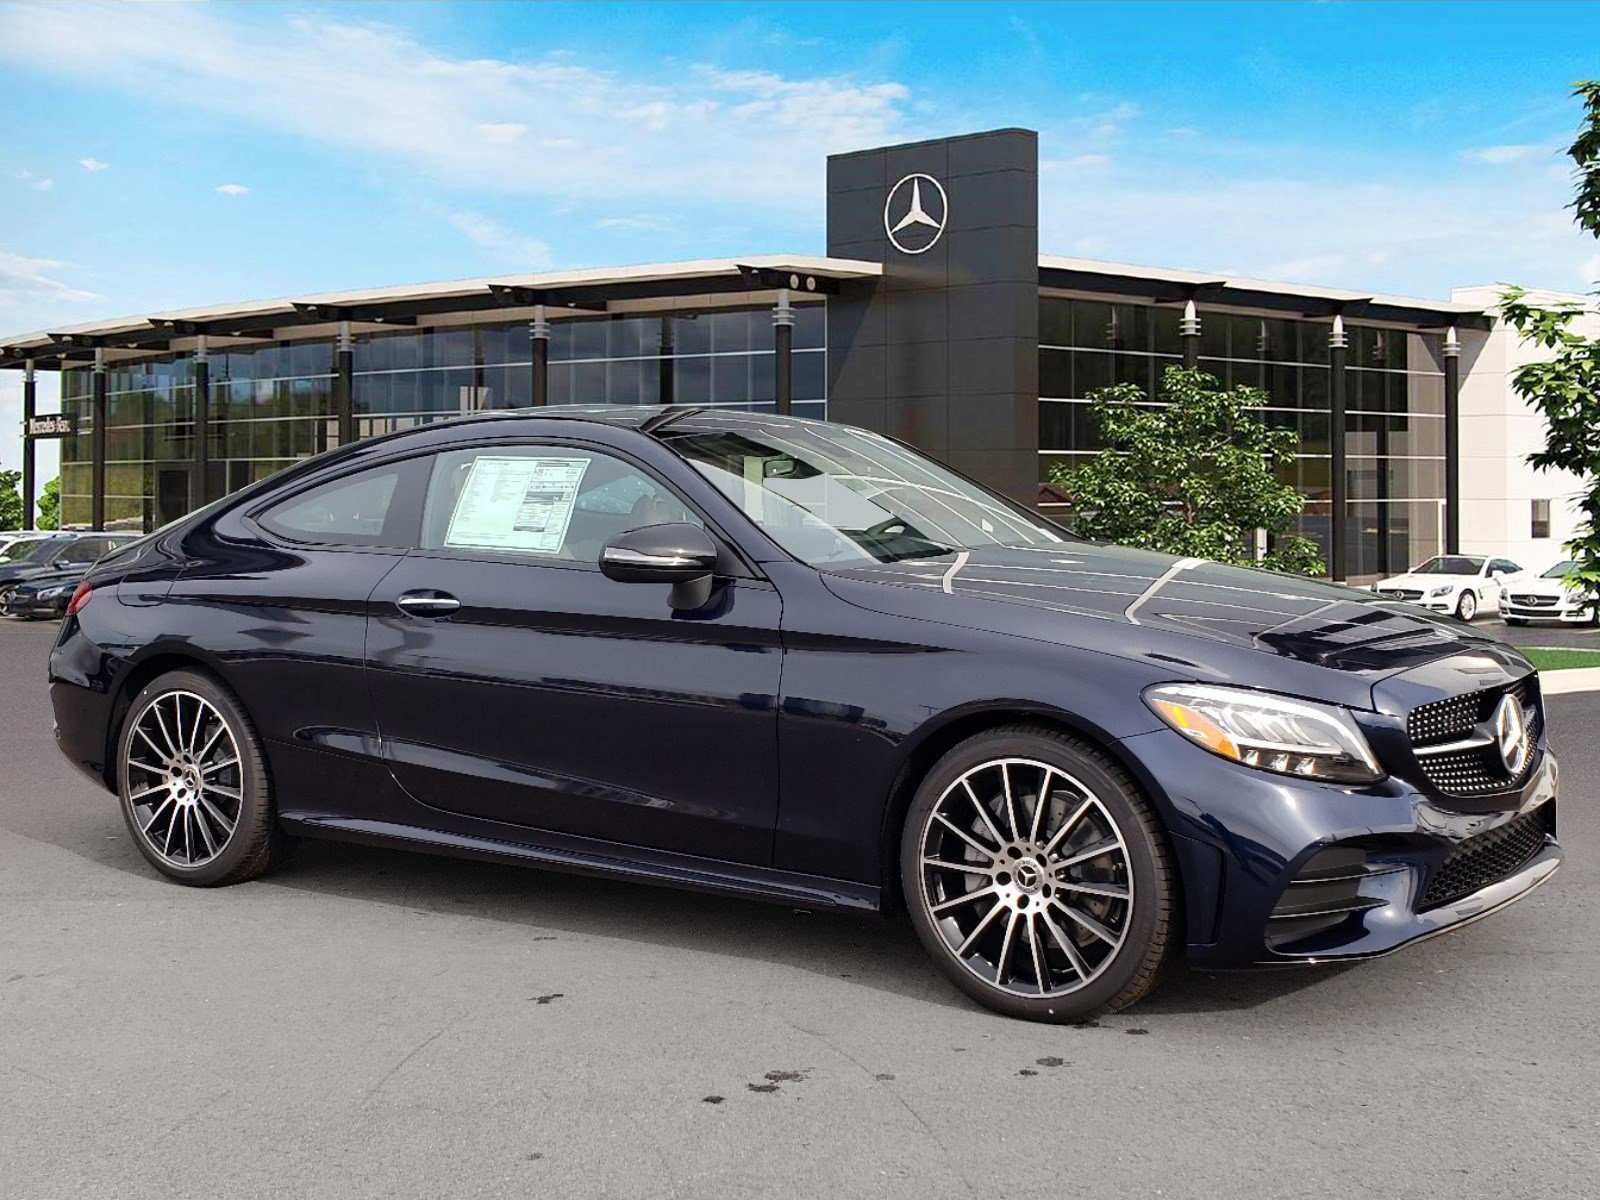 49 All New 2019 Mercedes Benz C Class Release Date And Concept